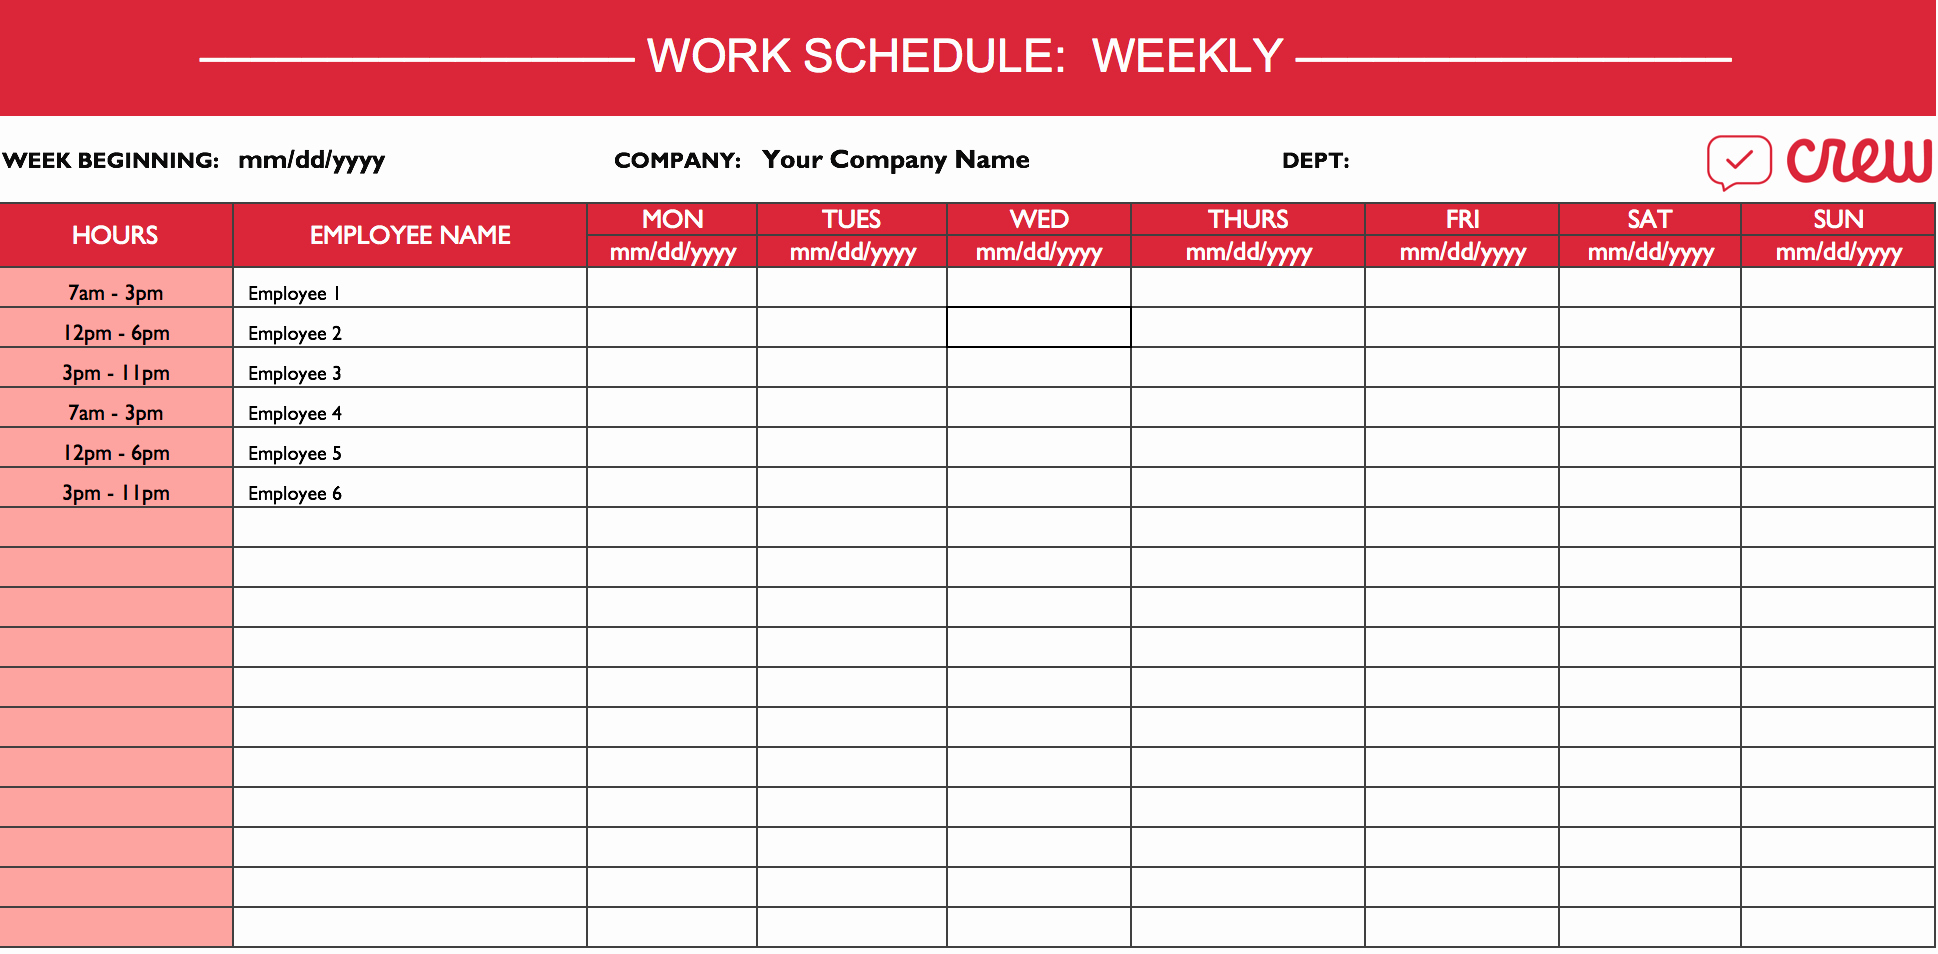 Week Day Schedule Template Beautiful Weekly Work Schedule Template I Crew